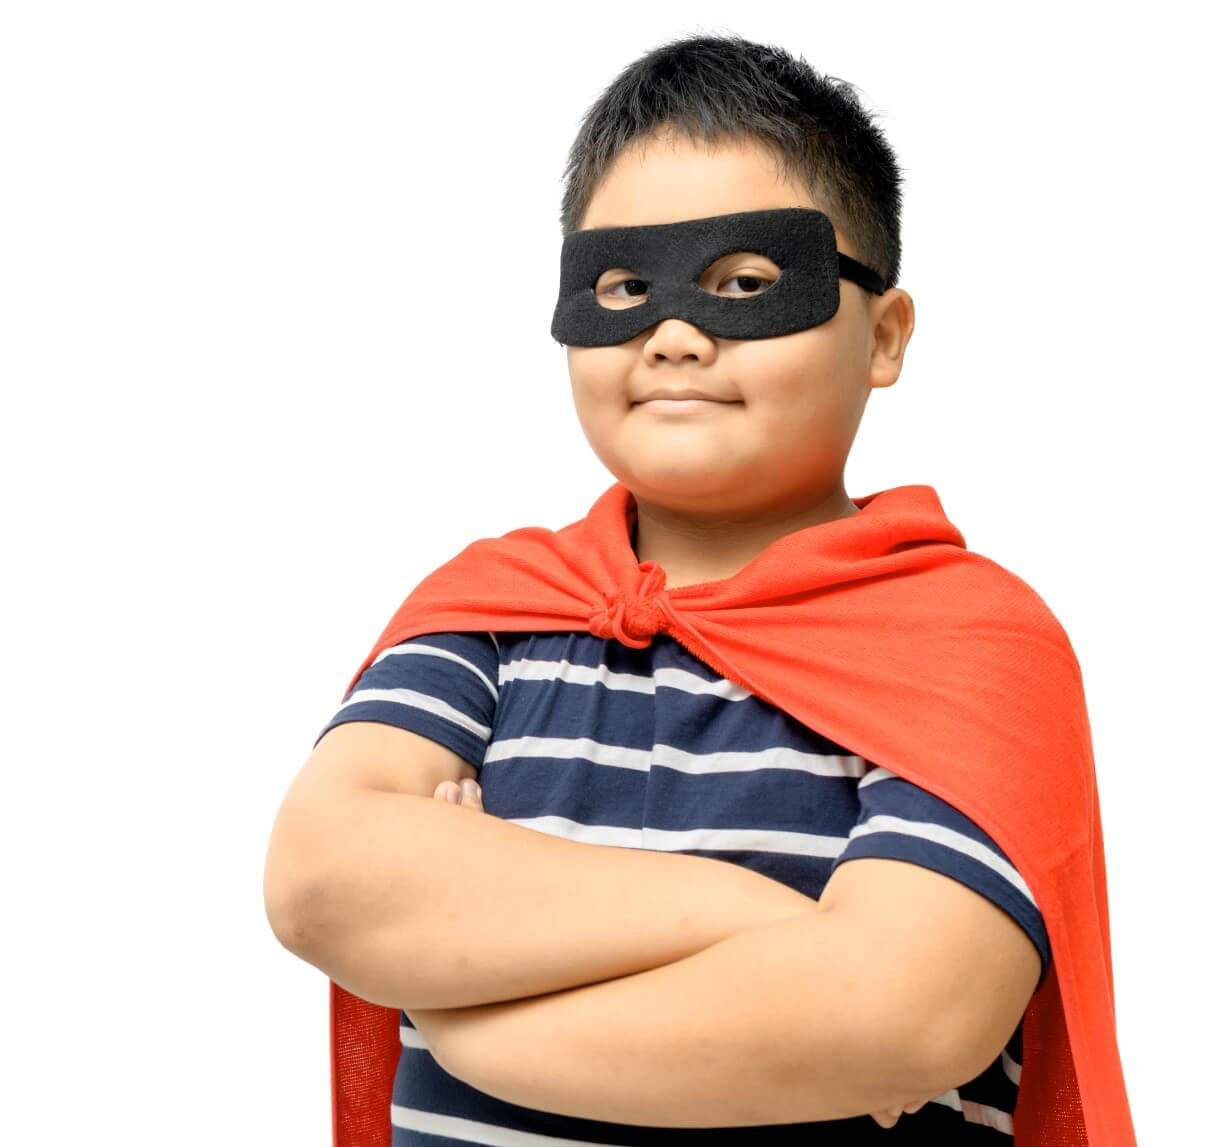 Young boy in superhero costume